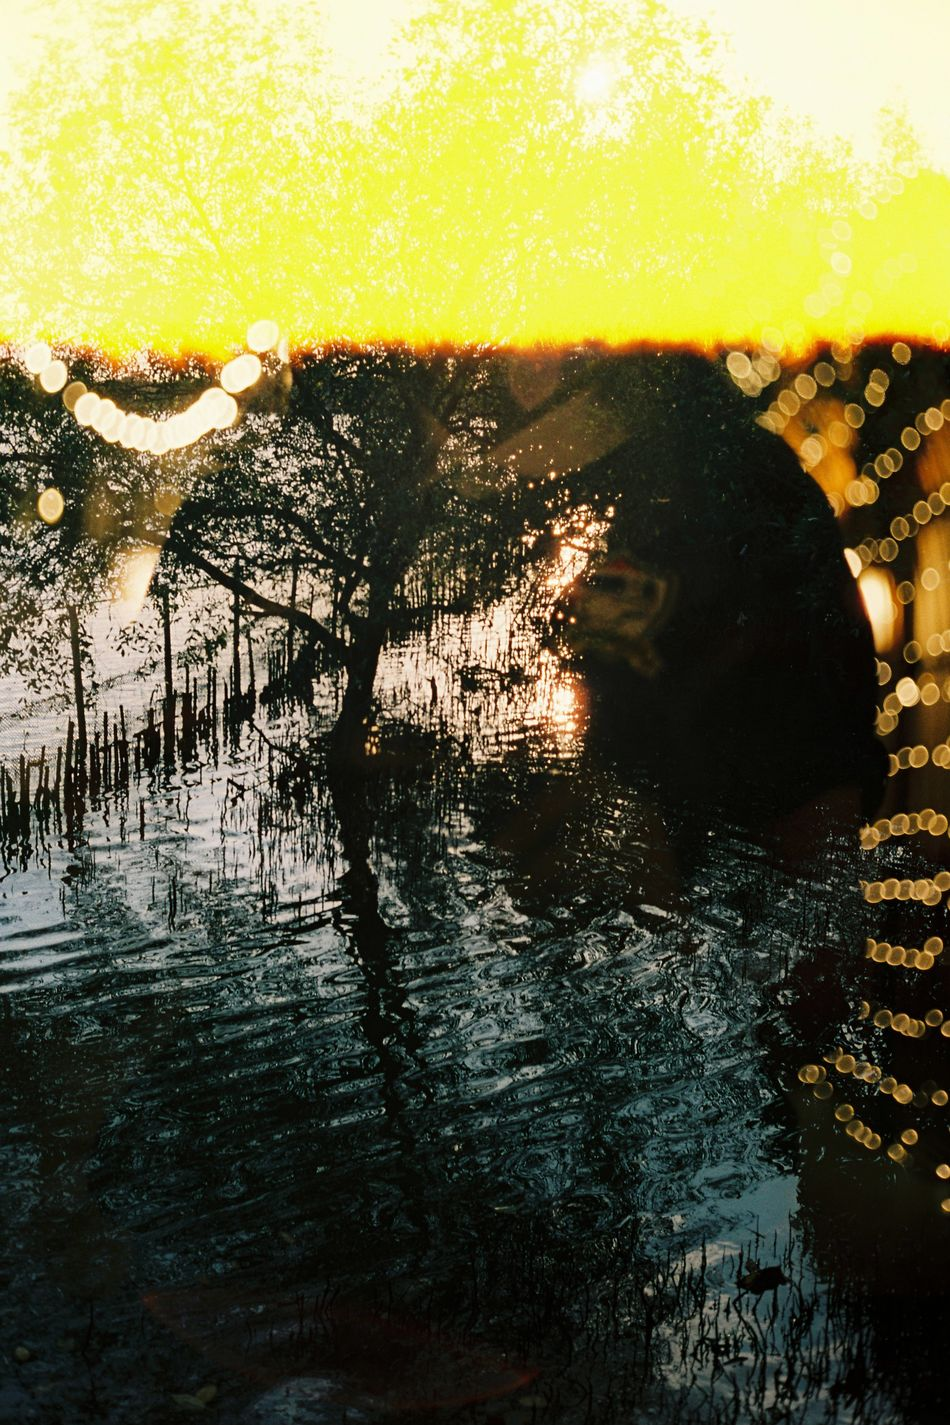 Sunset Tree One Person Silhouette Water Outdoors Nature Creativity Natural Light Feeling EyeEmNewHere Social Issues Inthemoment Analog Filmphotographer Filmisnotdead Lifestyles Multi-layered Effect Doubleexposure Lighting Nature Reflection Travel Destinations Eyemphotography Life In Motion EyeEm Diversity